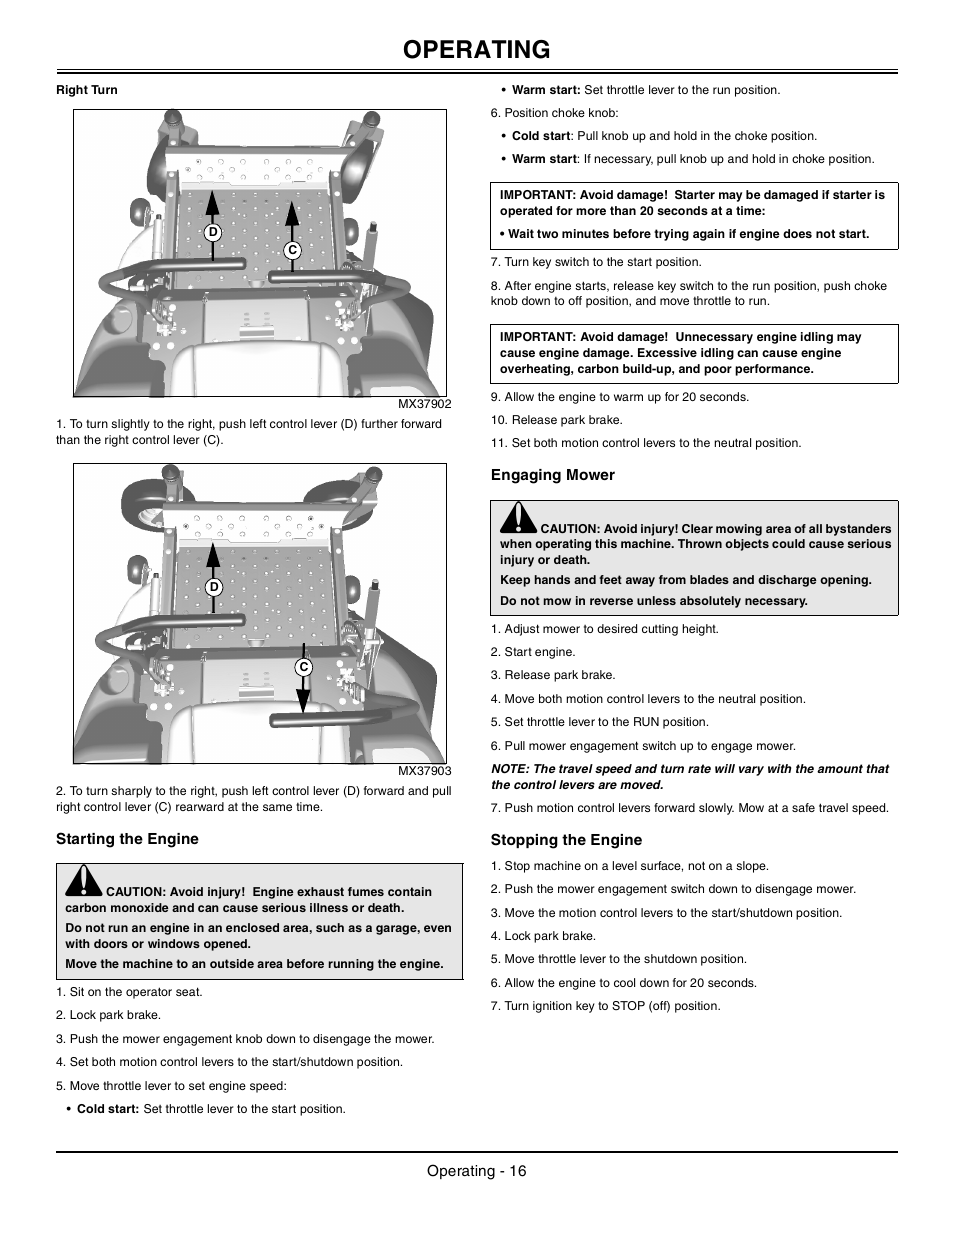 Right Turn Starting The Engine Engaging Mower Manual Guide